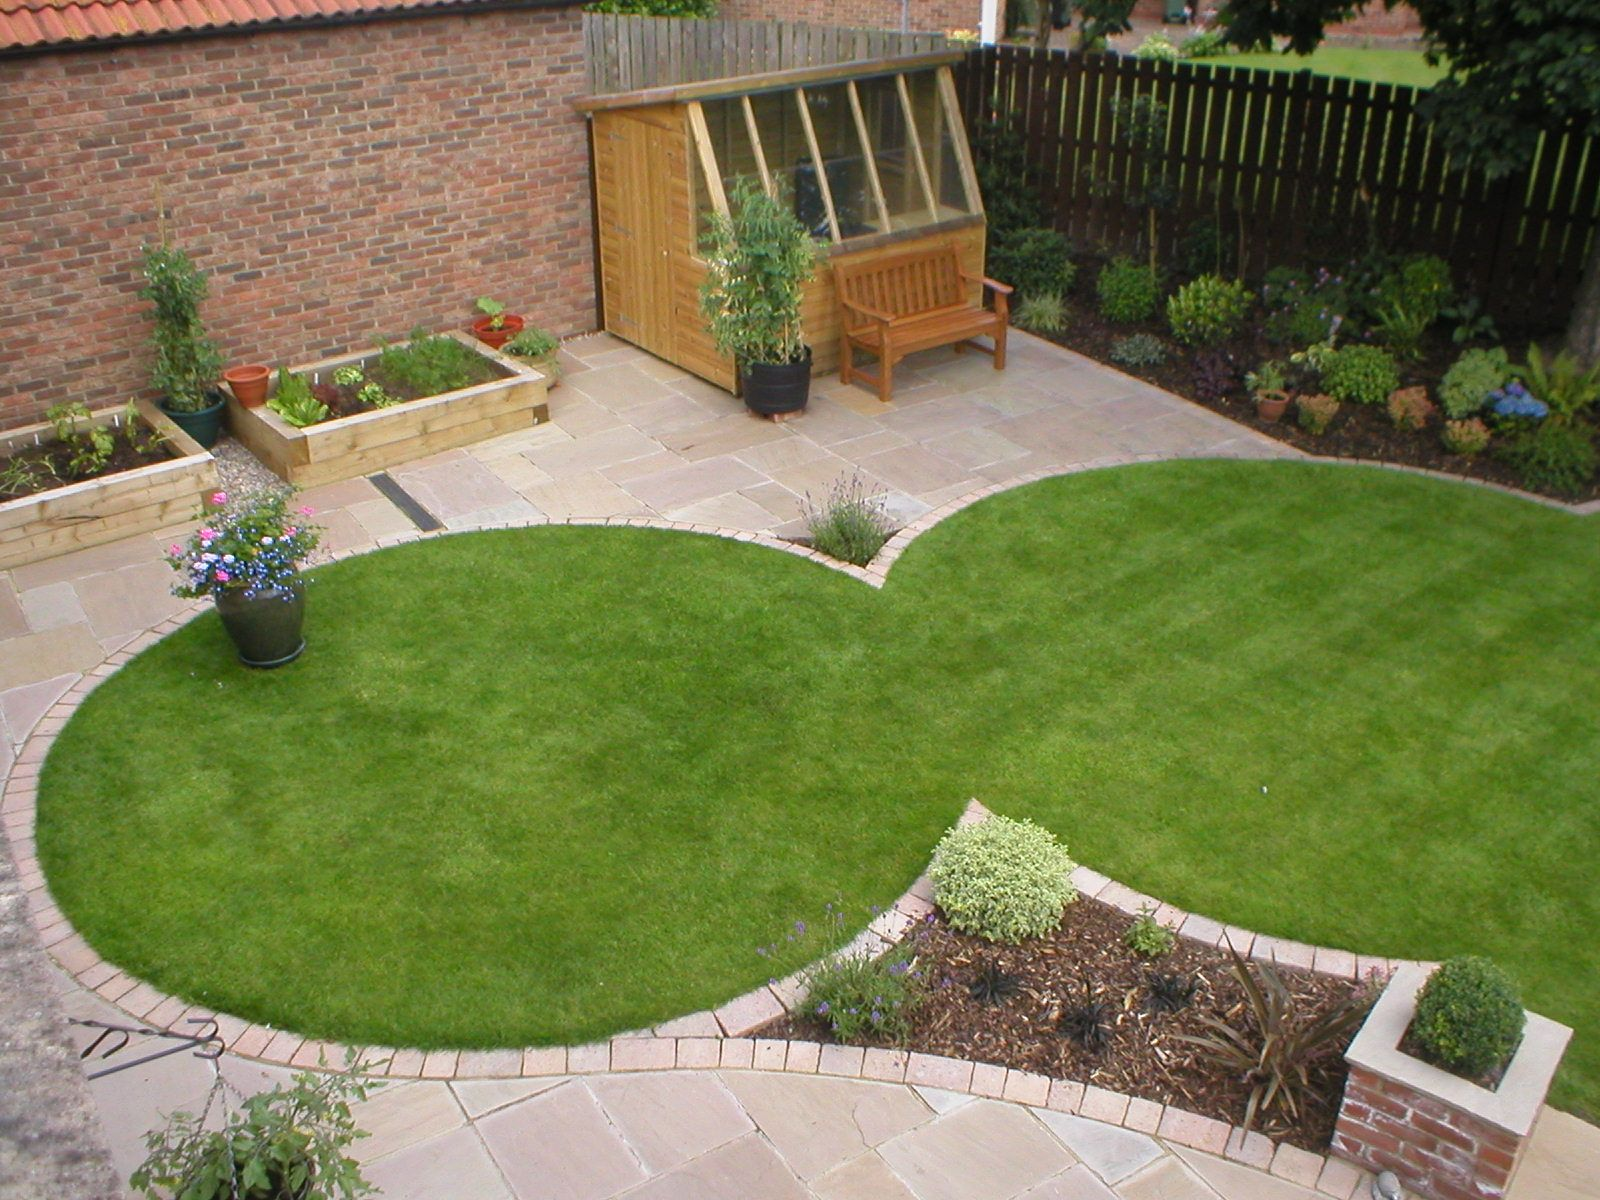 Circular Lawns Create Space For Paving For Our Clients In Poppleton York Contemporary Gardensgarden Studiosmall